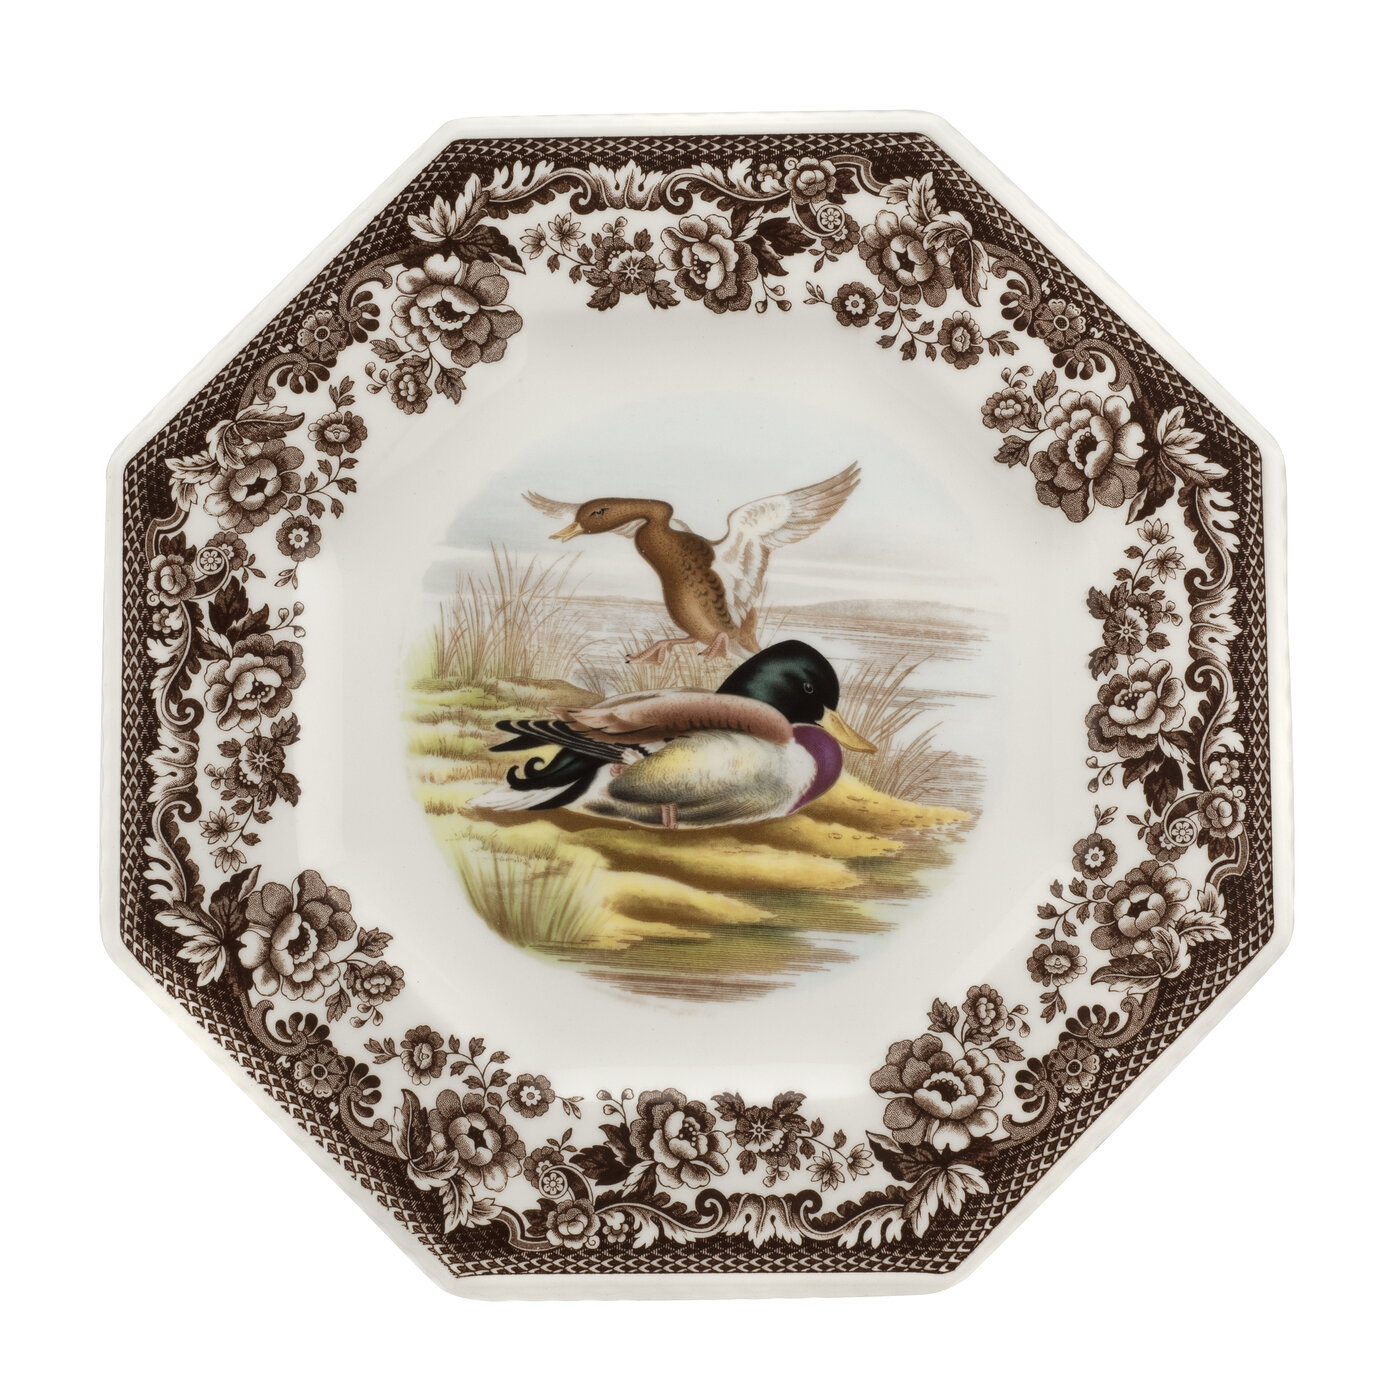 Spode Woodland Octagonal Plate 9.5 Inch (Mallard) image number 0